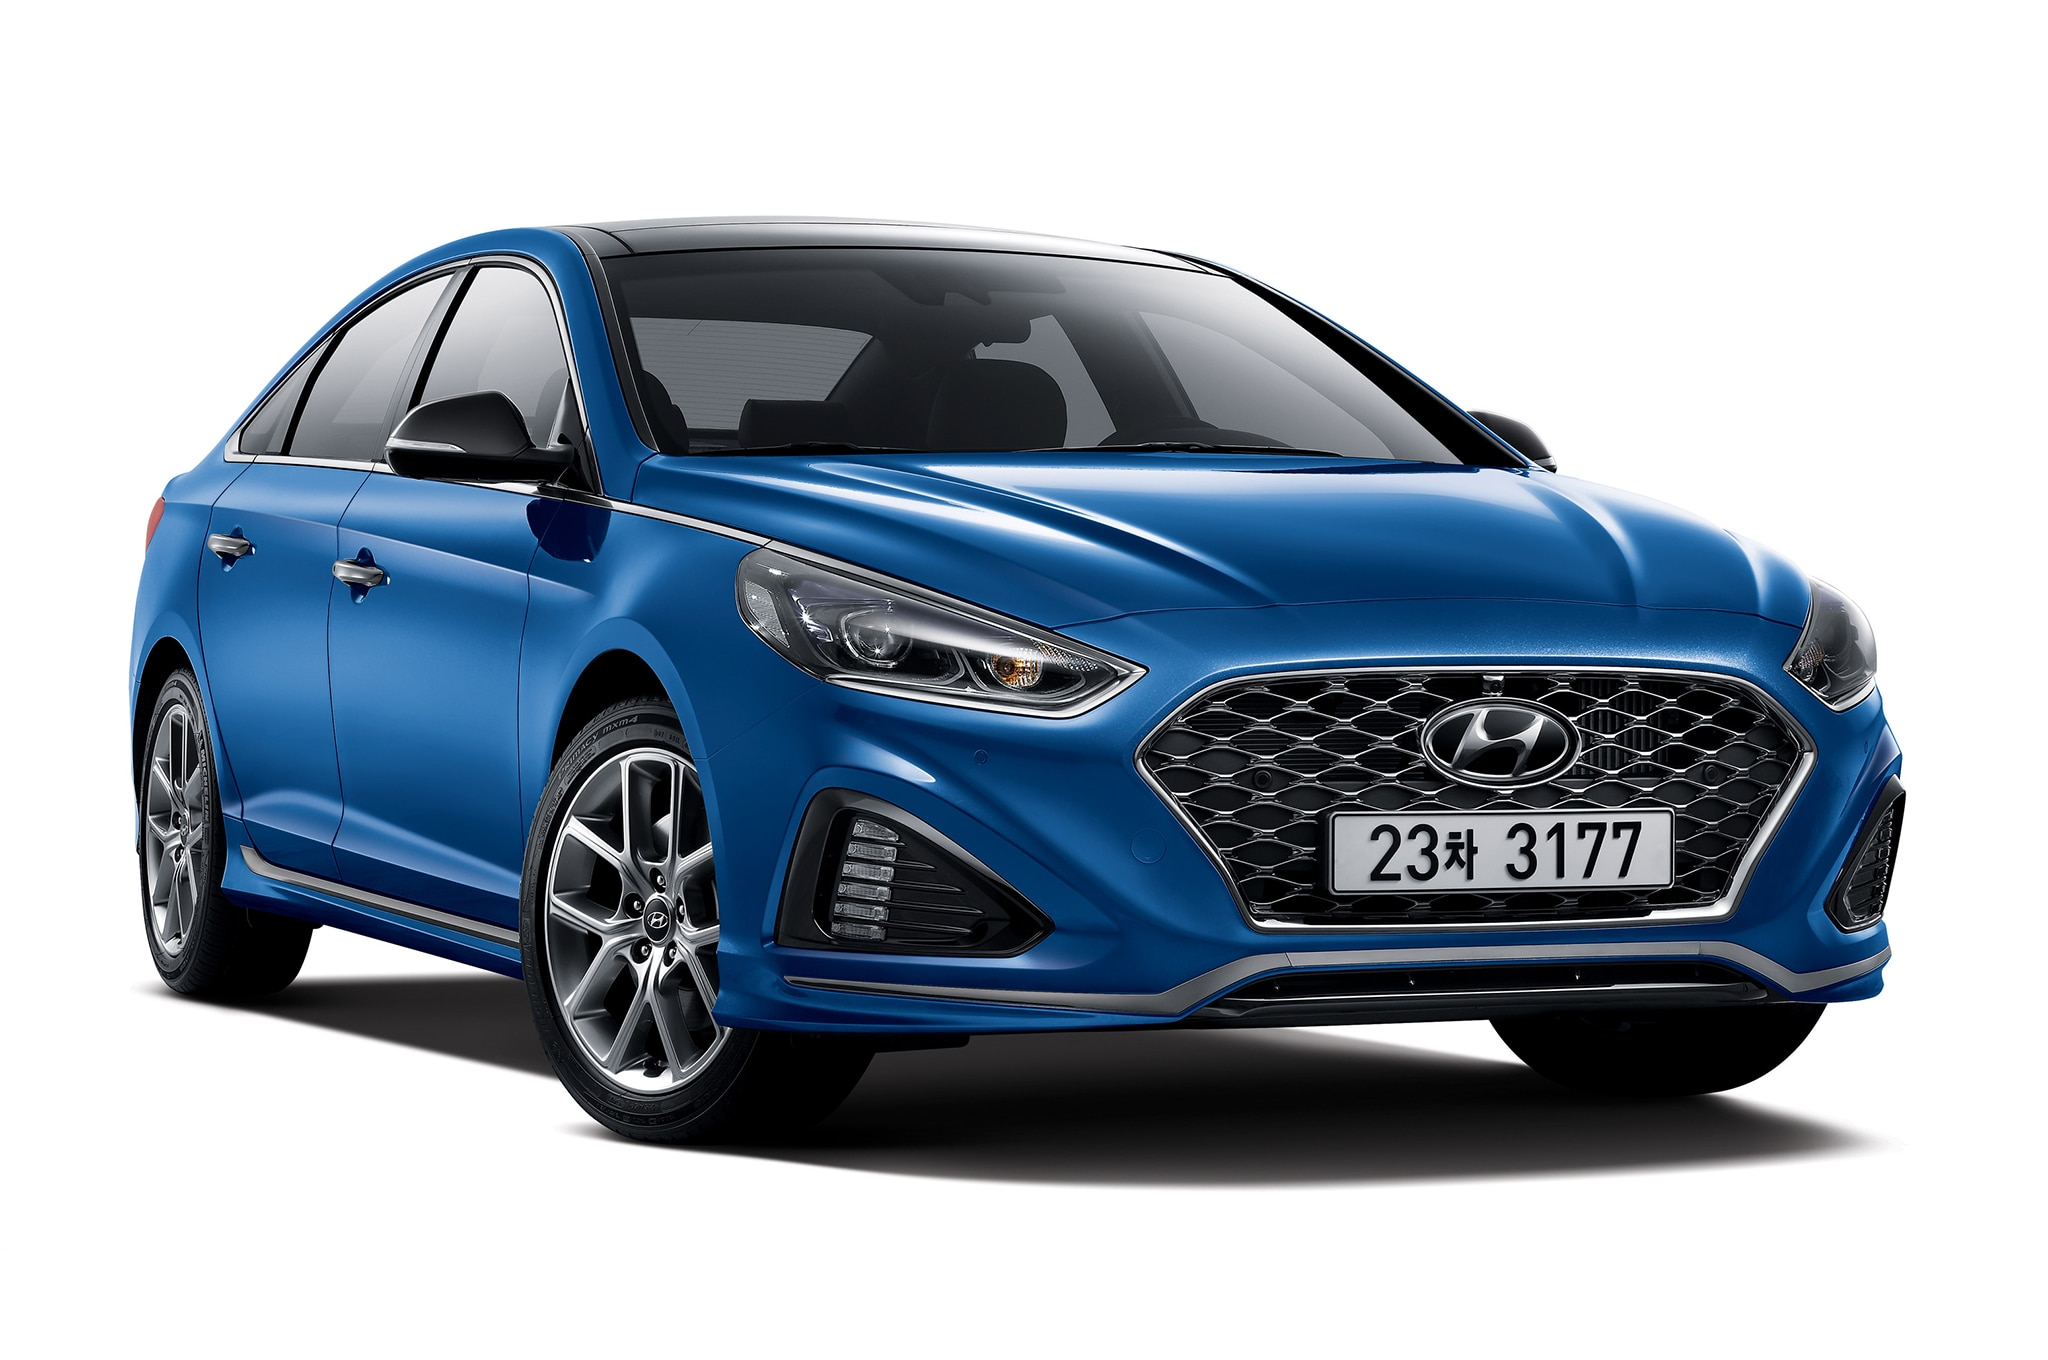 2018 Hyundai Sonata Turbo Korean Spec Front Three Quarter 1